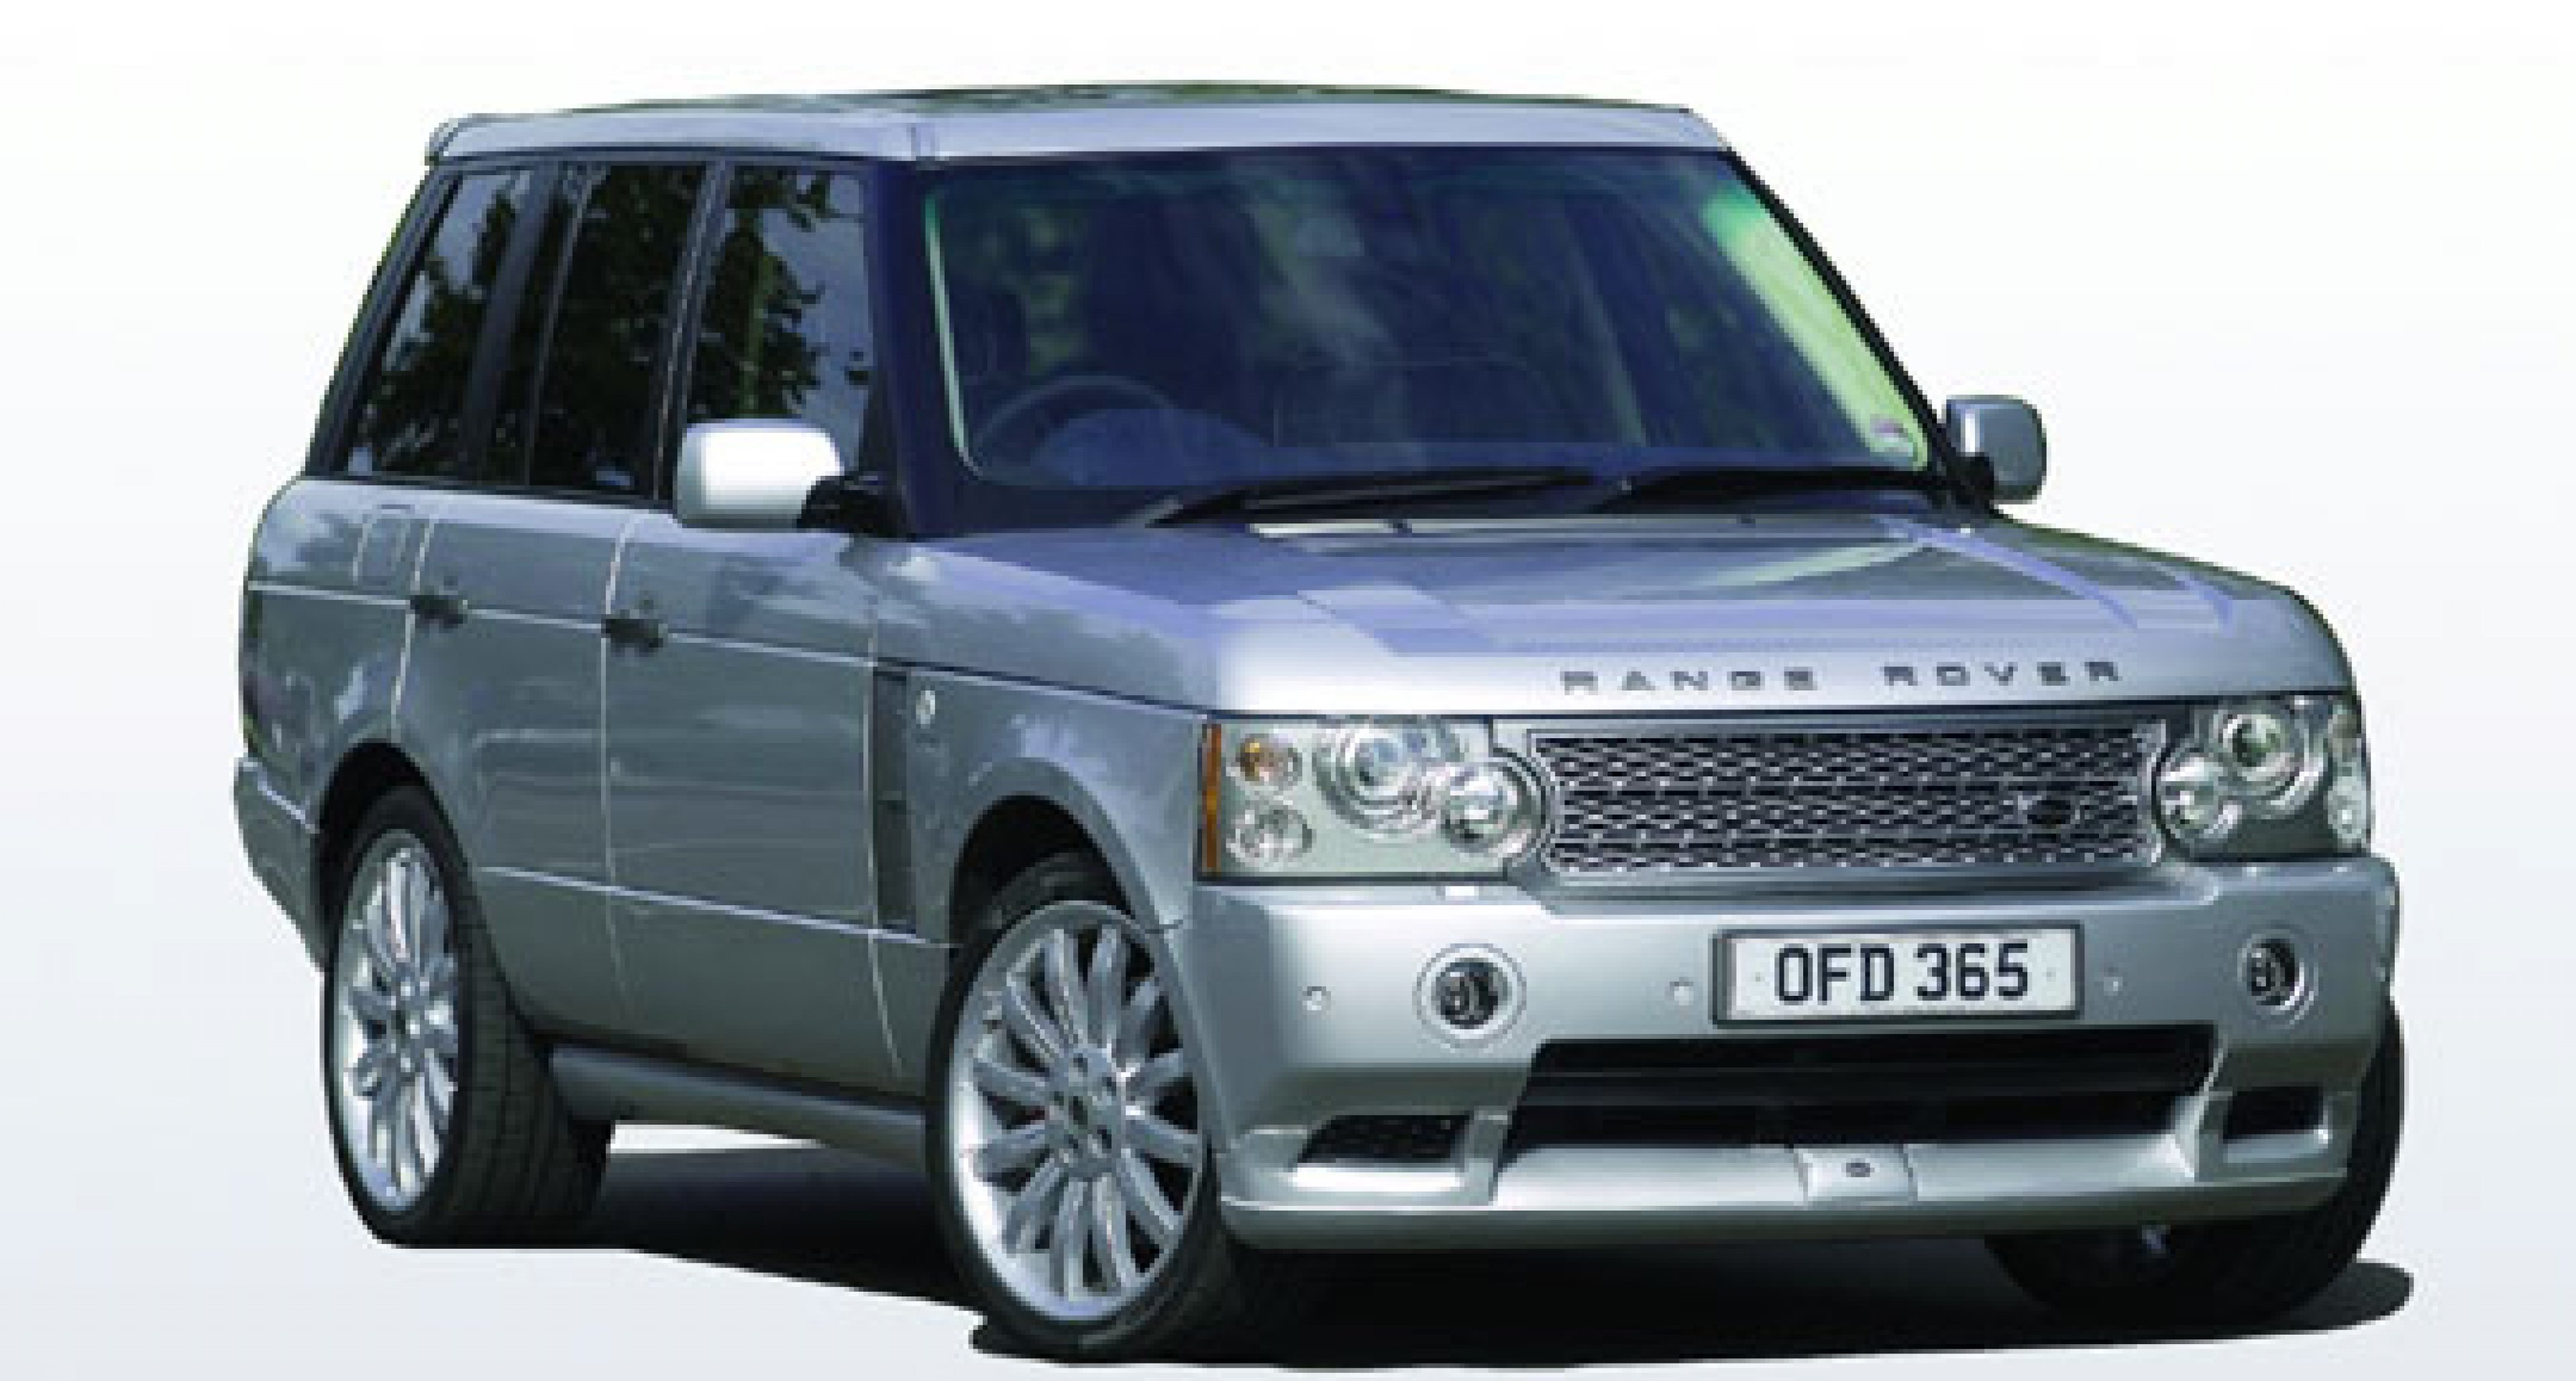 2006 Range Rover Aerostyling Pack now available from Overfinch